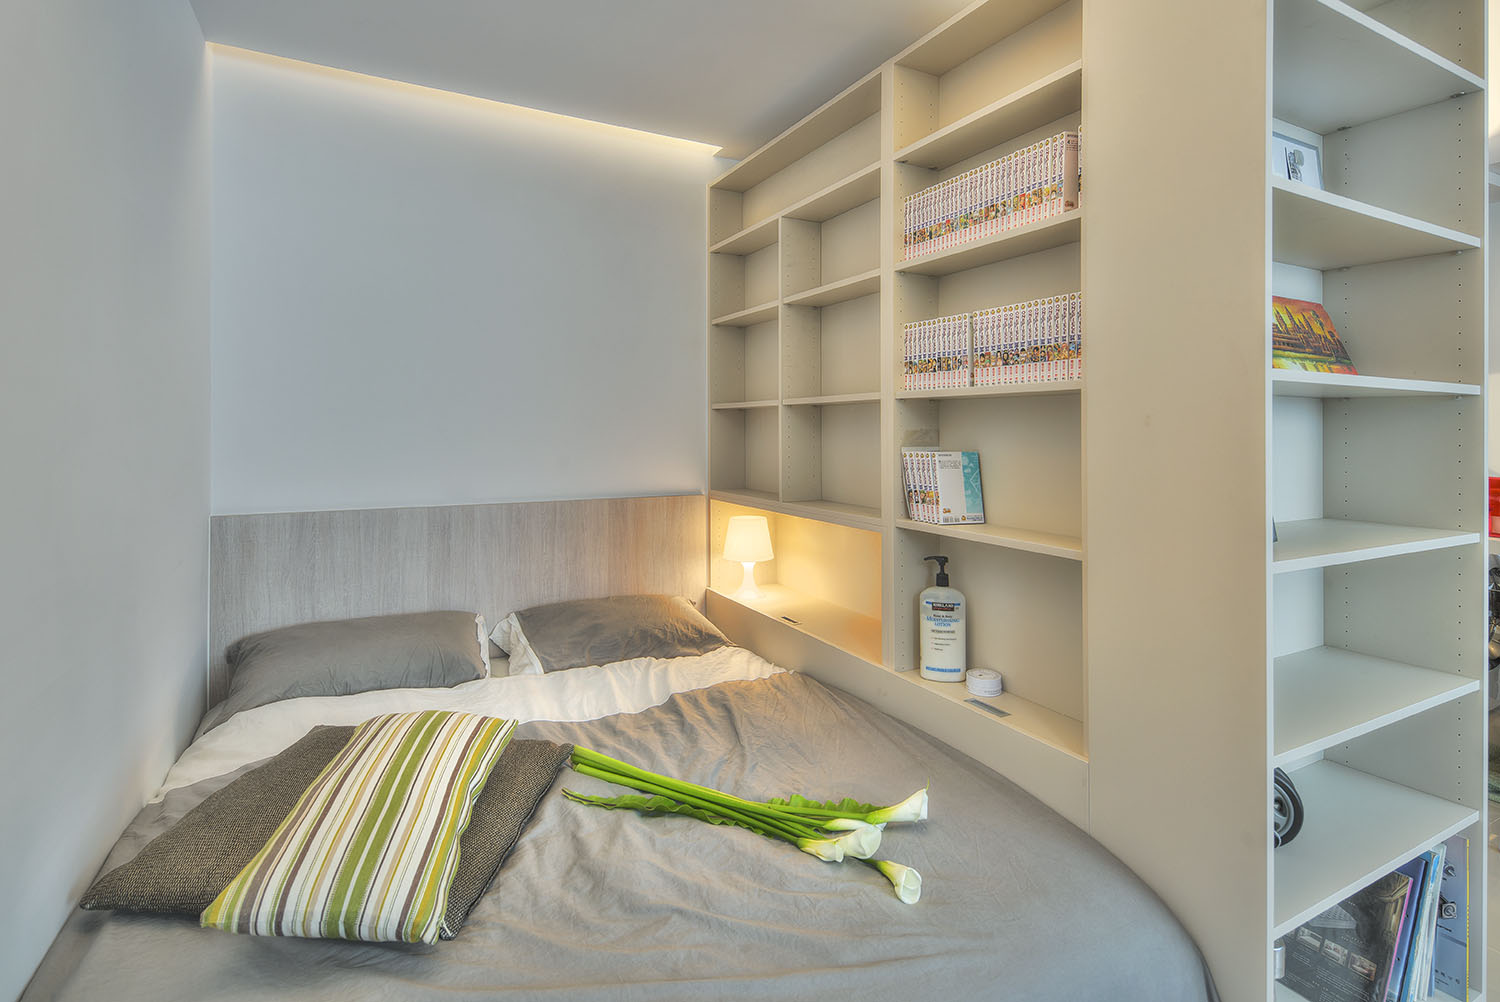 Studio Apartment Sleeping Solutions Small Taipei Studio Apartment With Clever Efficient Design